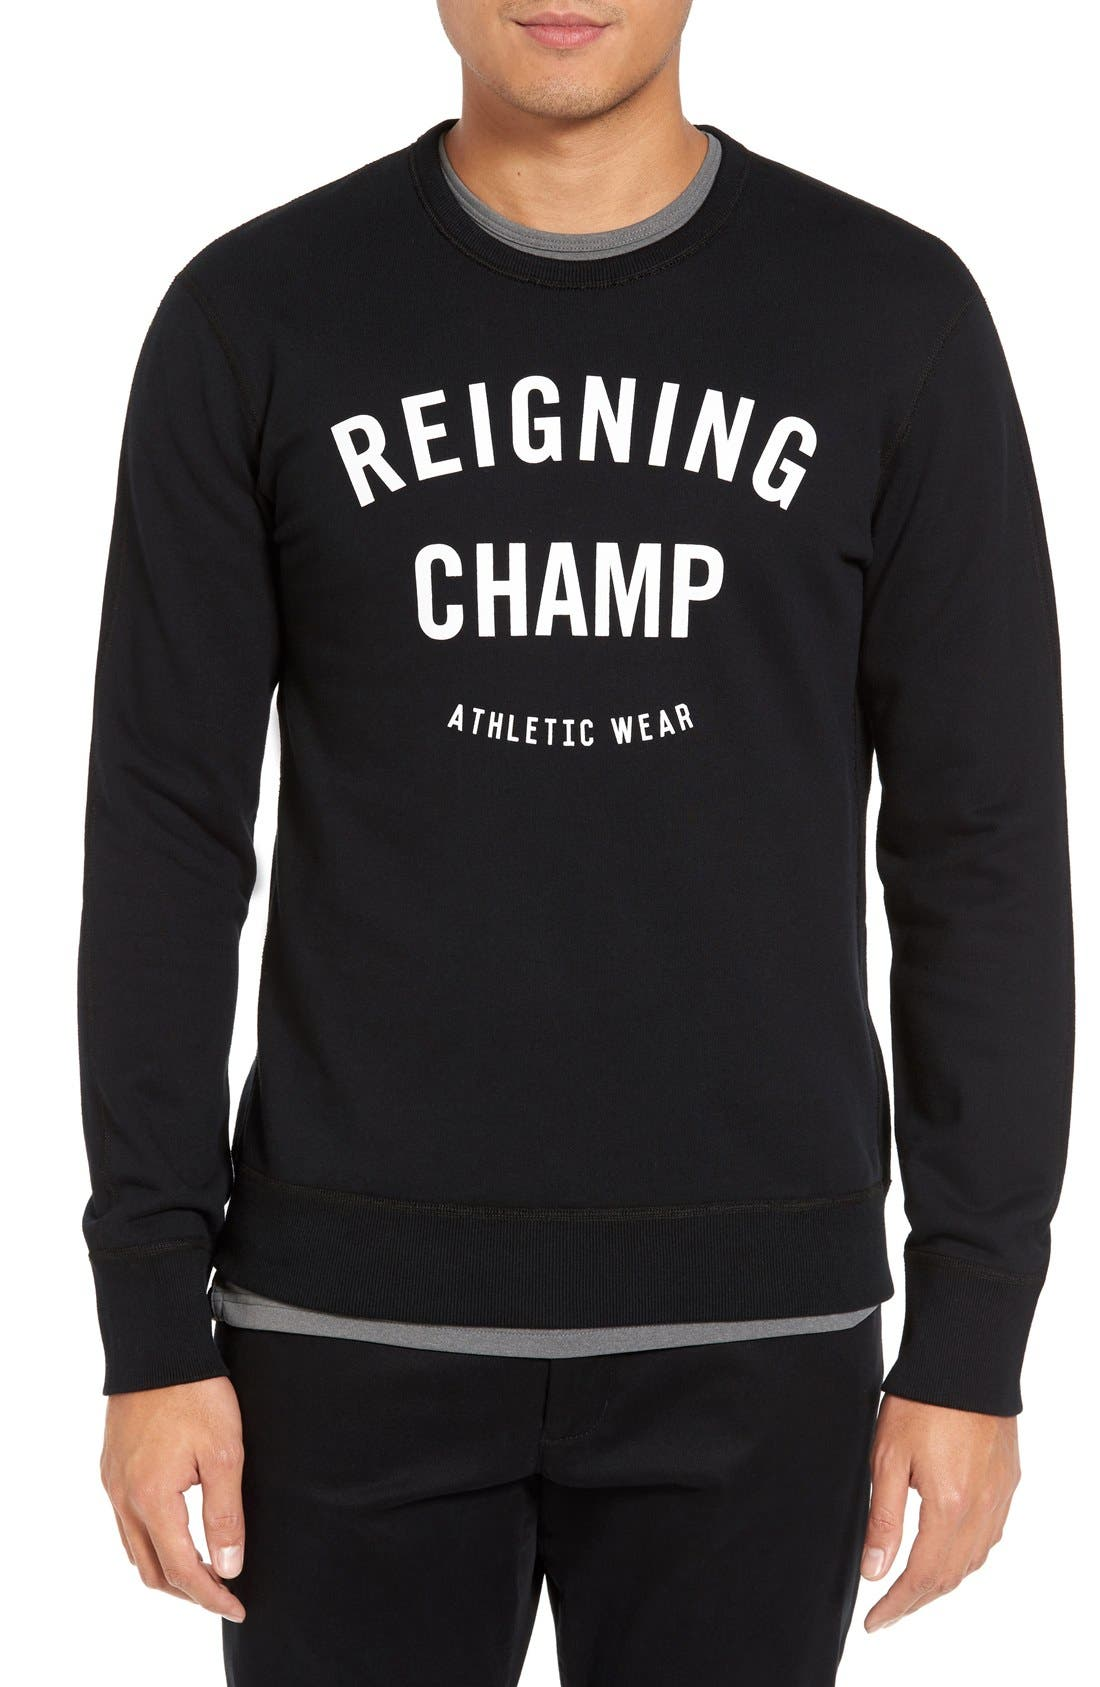 Reigning Champ Gym Logo Crewneck T-Shirt